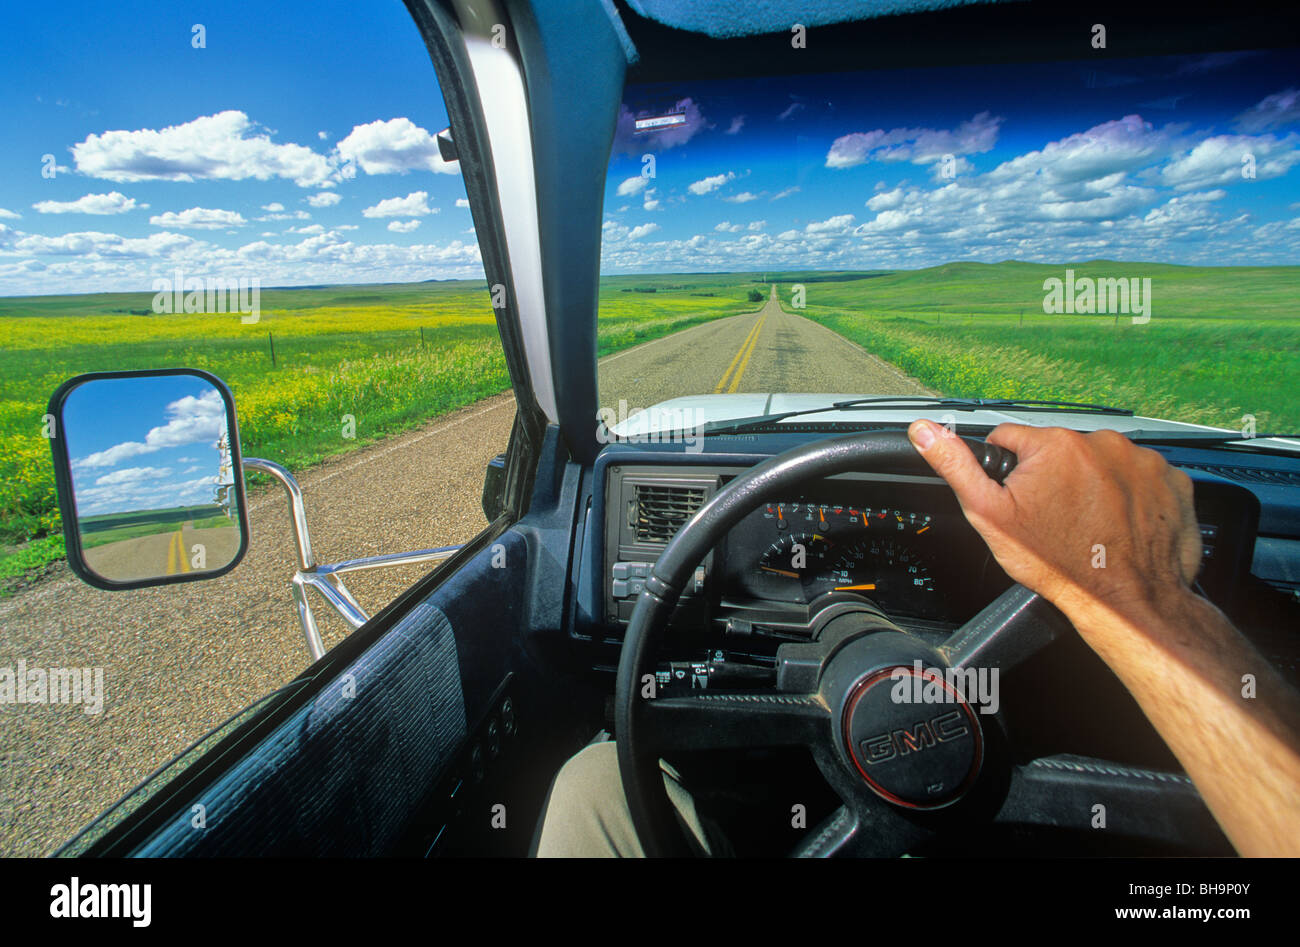 Driving across the Great Plains at Grand River National Grassland near Bison, South Dakota, USA - Stock Image